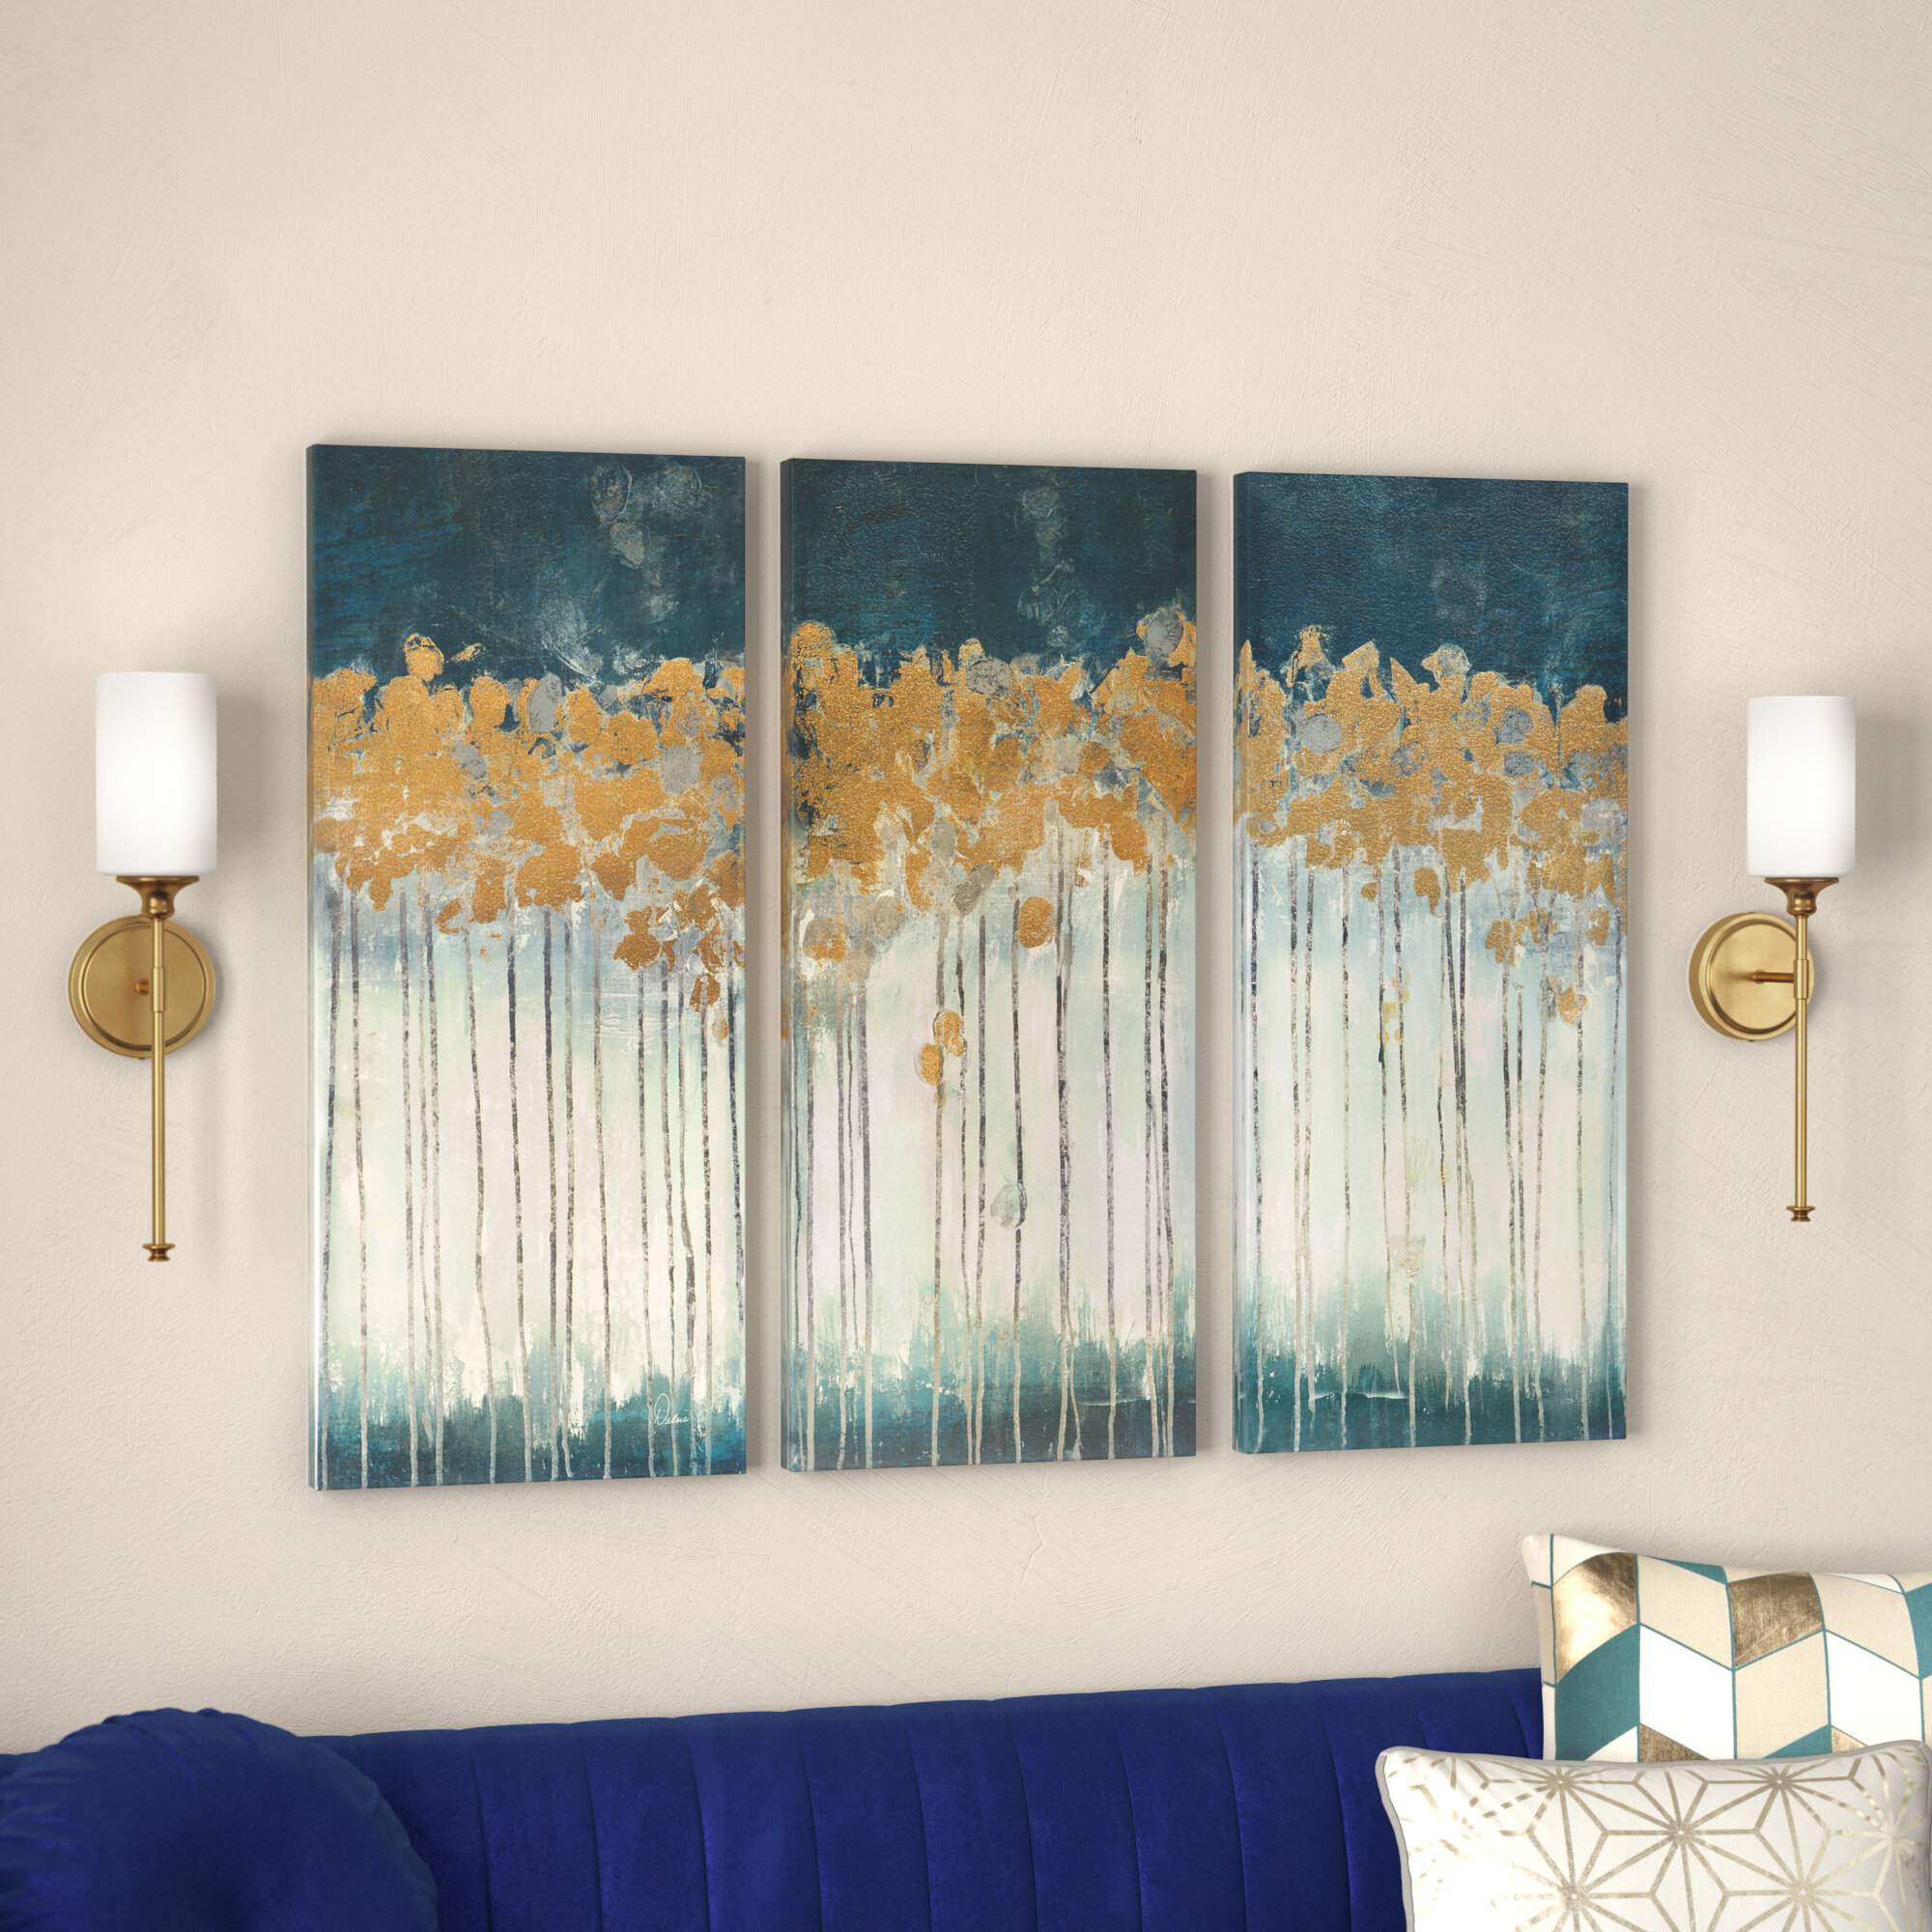 Willa Arlo Interiors Midnight Forest Gel Coat Canvas Wall Art With Gold Foil Embellishment 3 Piece Set Reviews Wayfair